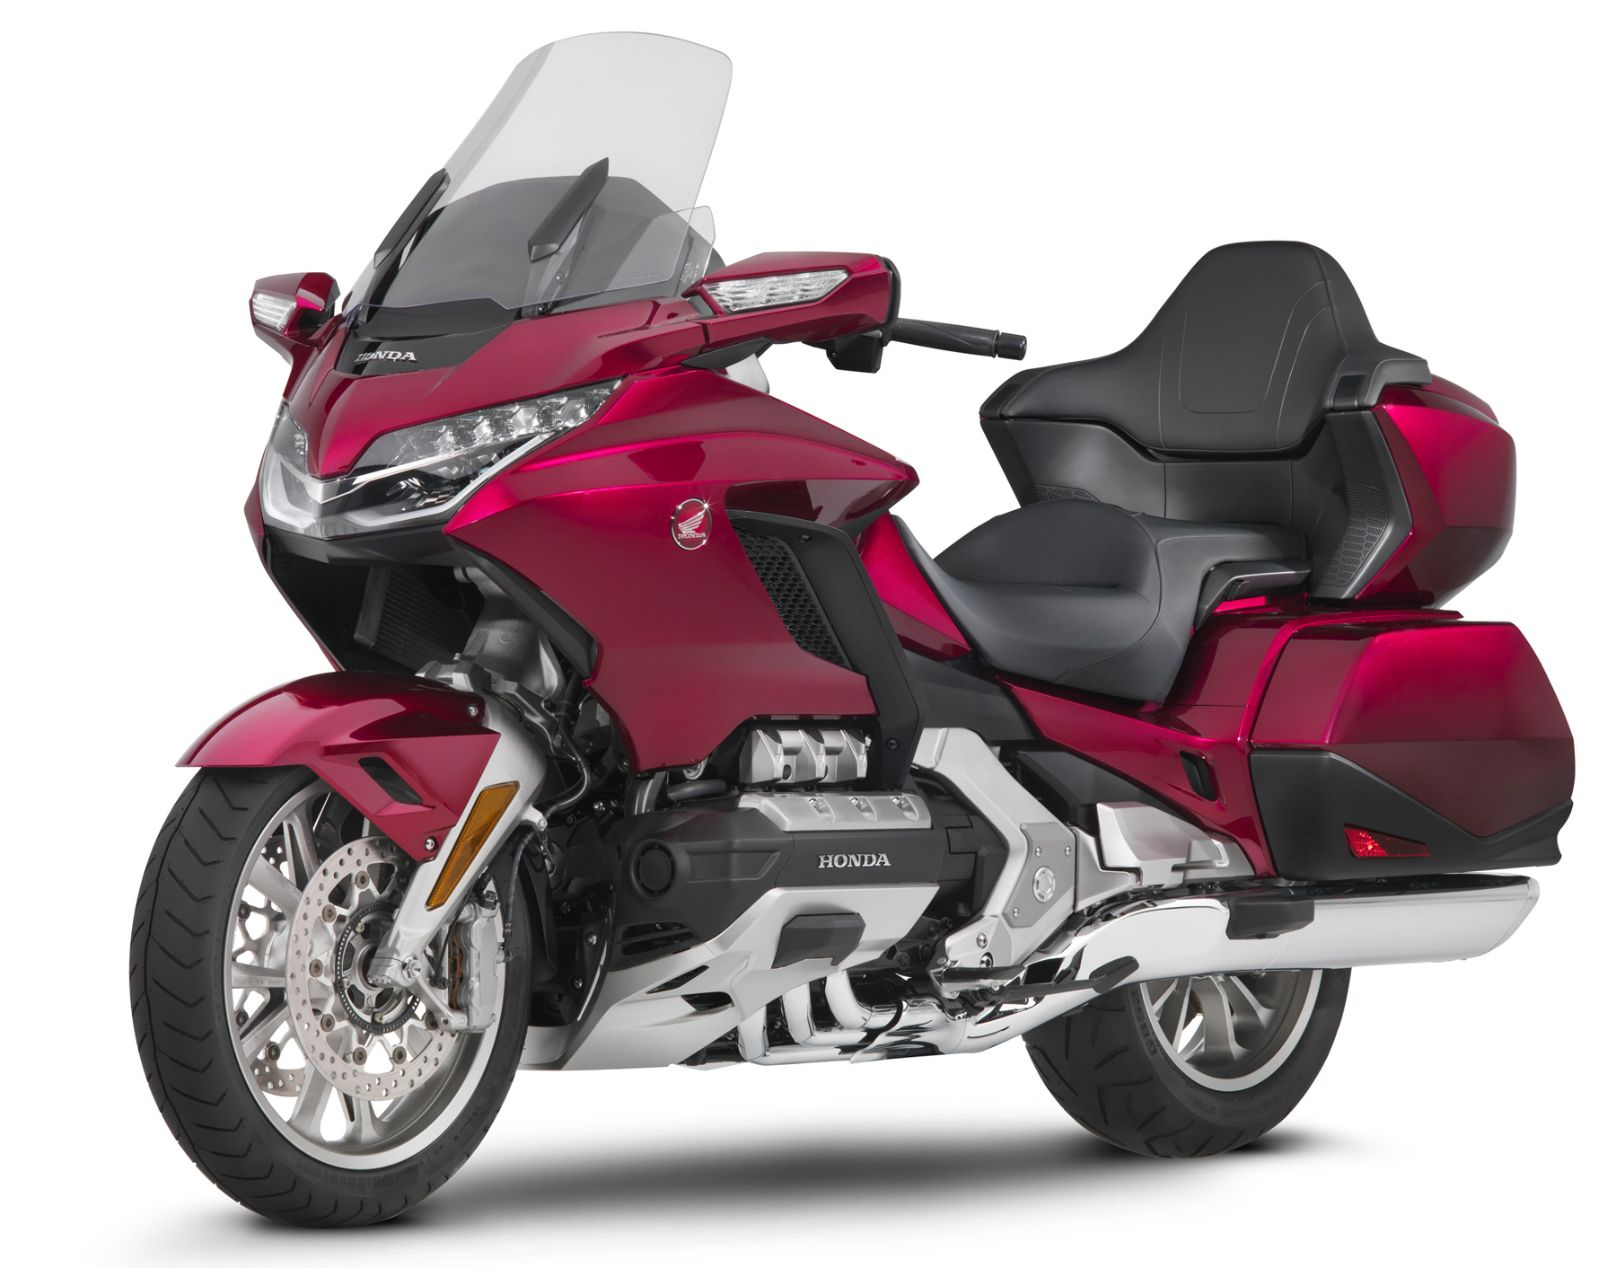 78 The Best 2020 Honda Gold Wing Redesign and Concept